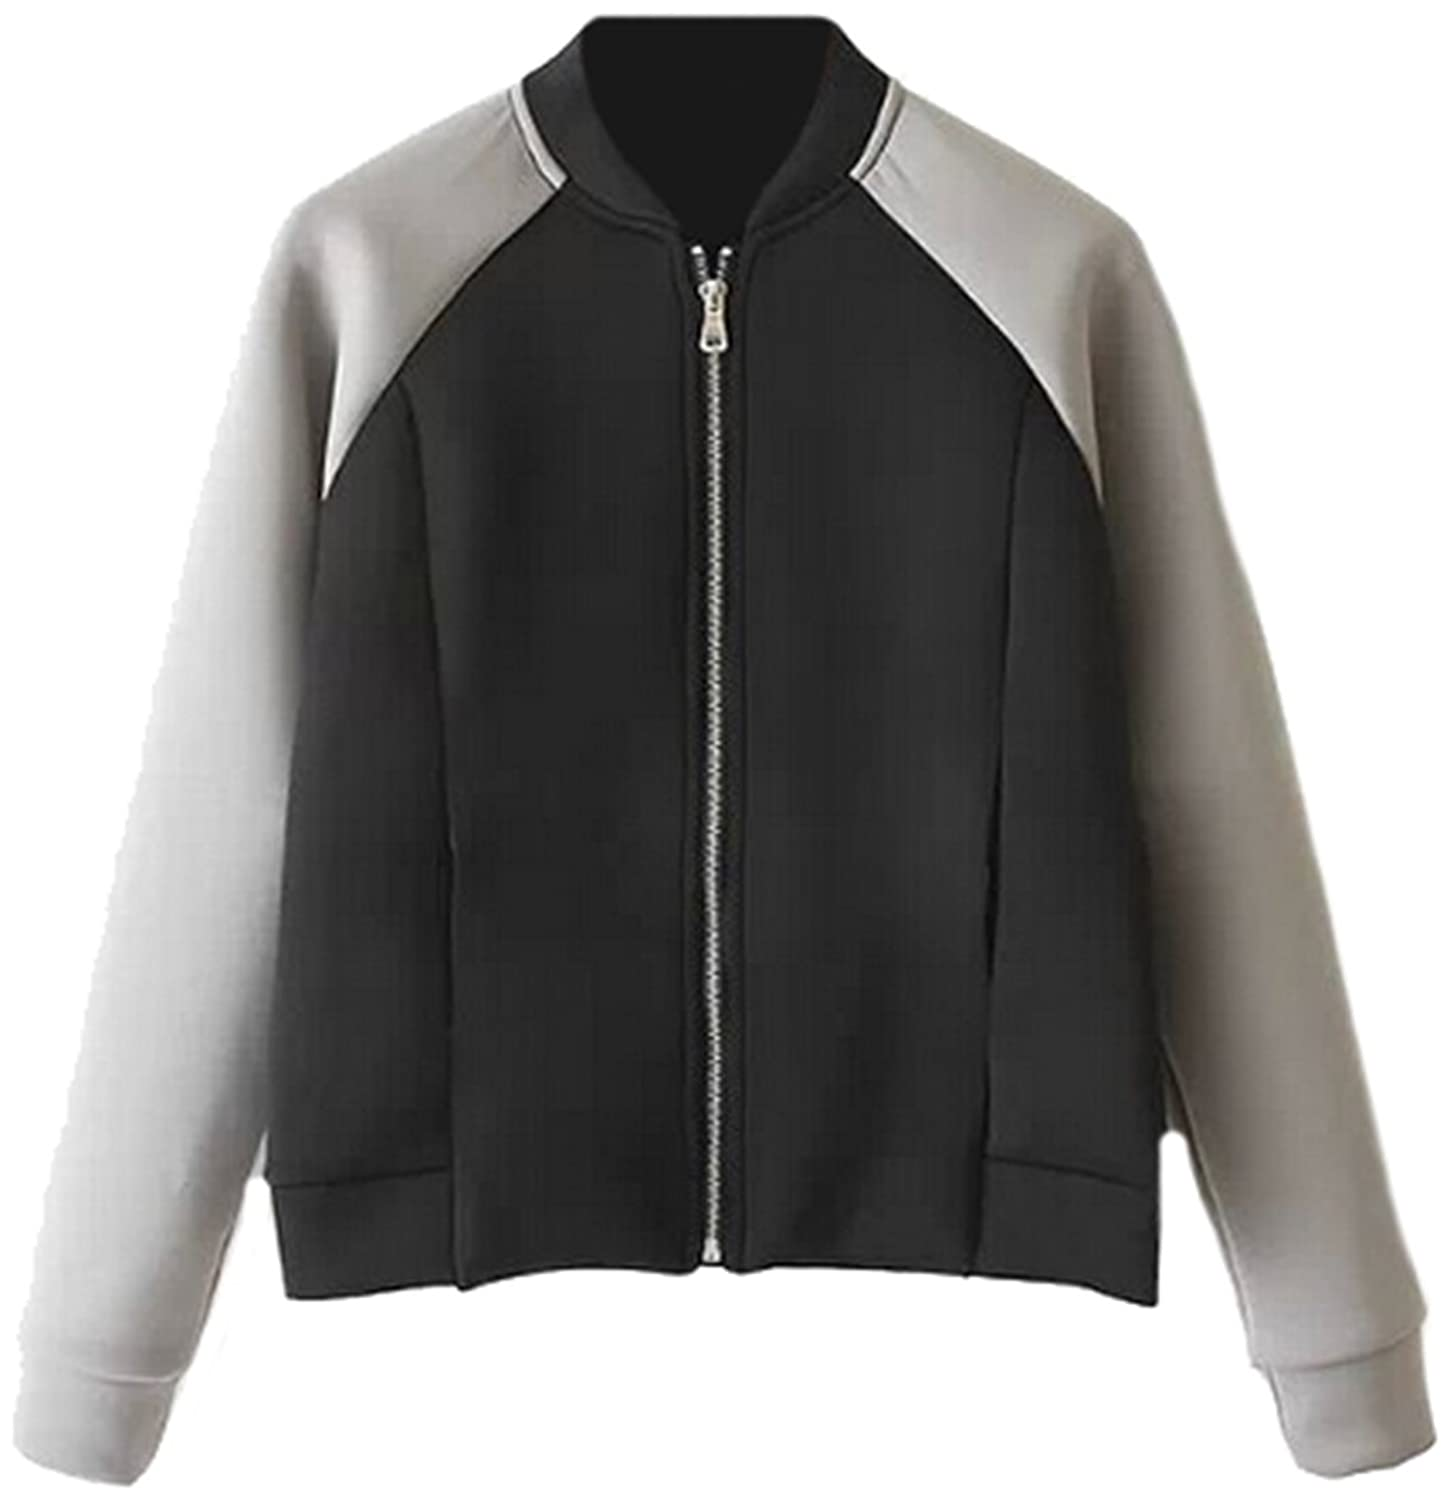 KXP Womens Vouge Autumn Spliced Zipper-up Slim Bomber Jackets